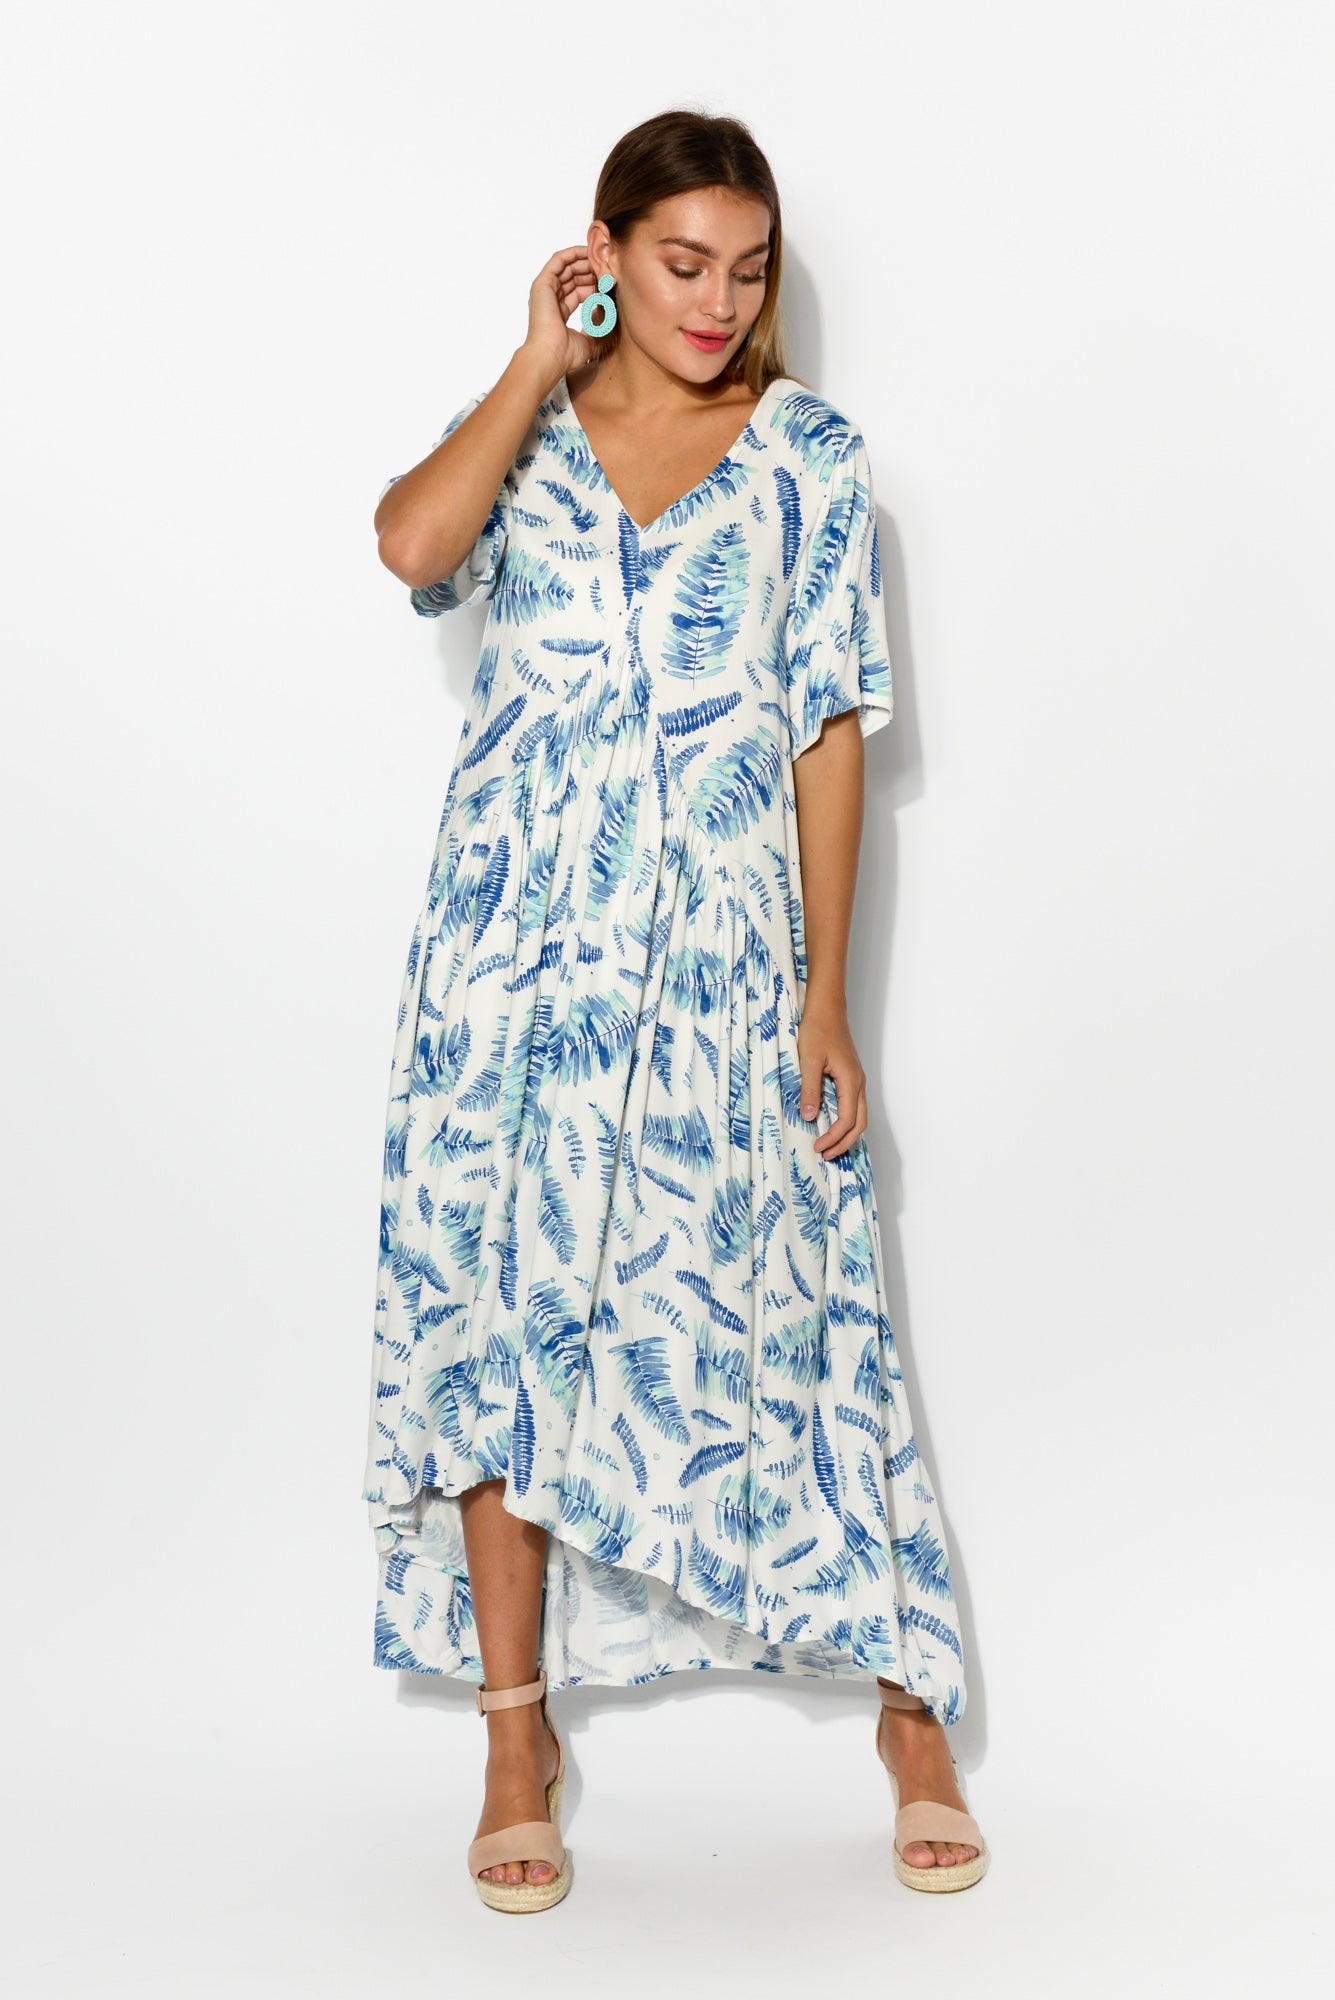 Garden Palm Peak Maxi Dress - Blue Bungalow